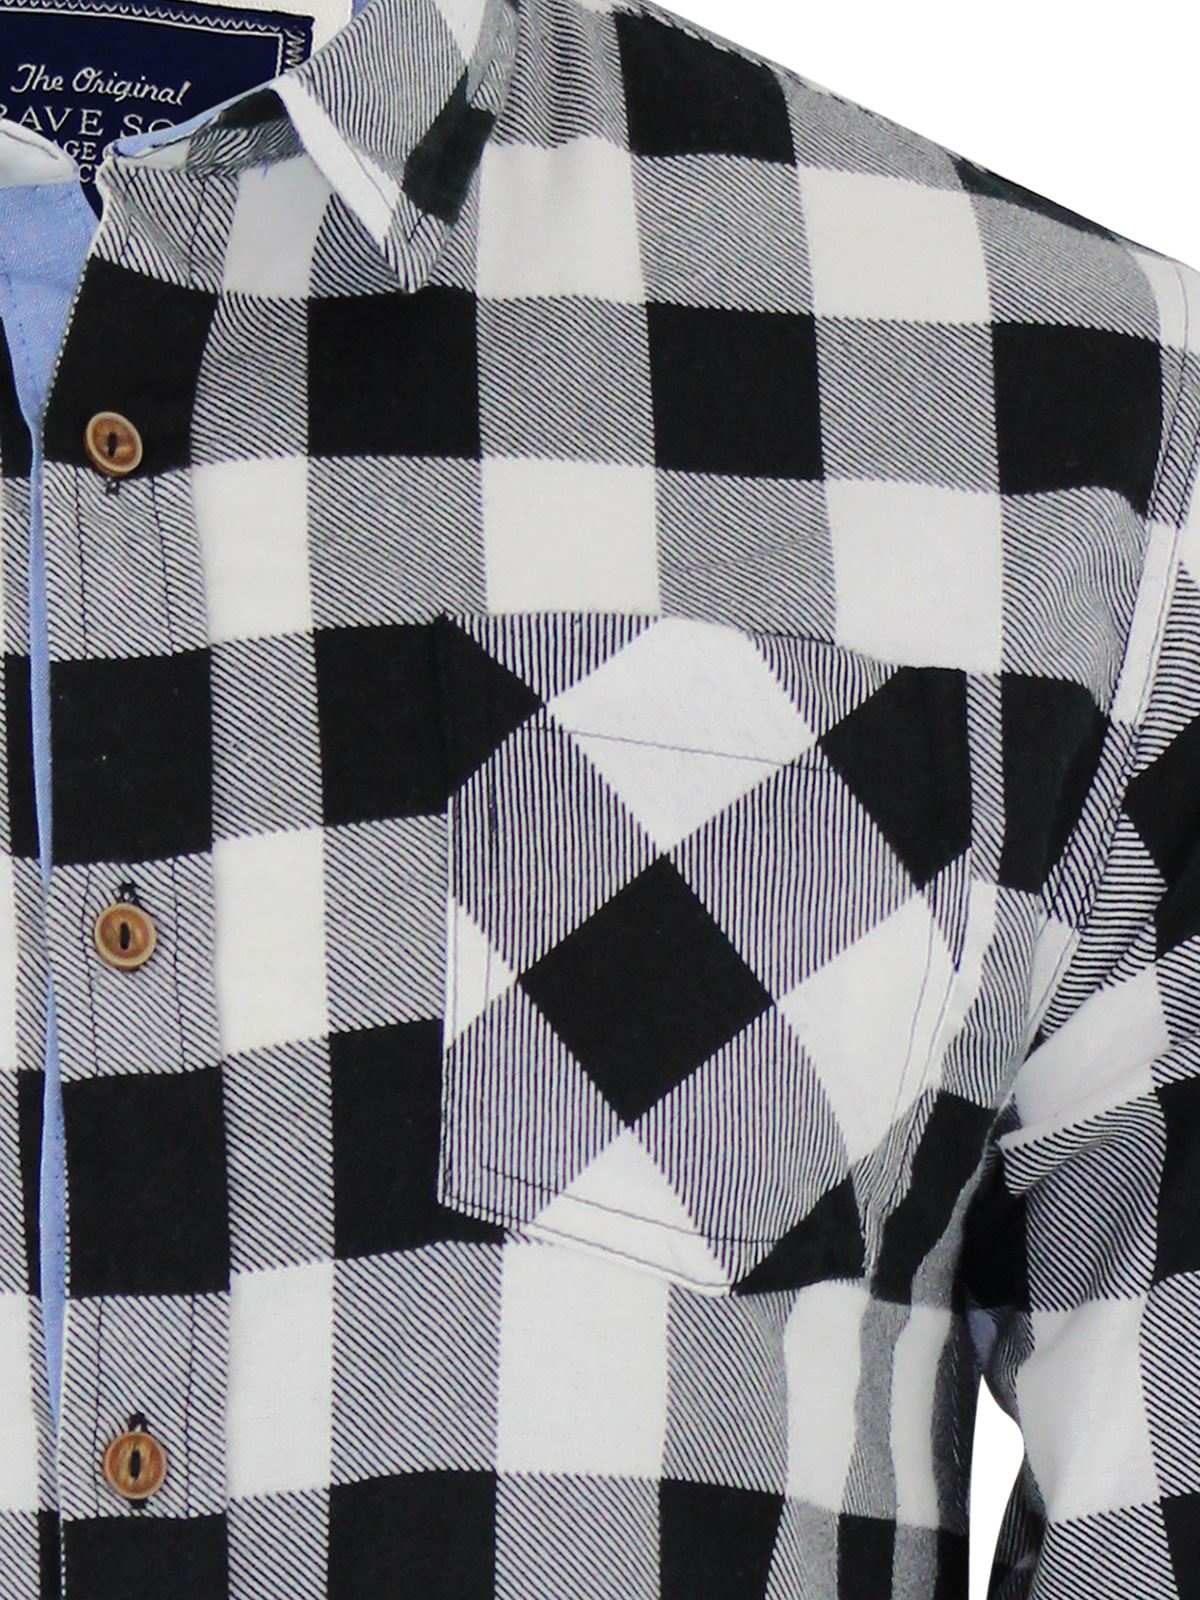 Mens-Check-Shirt-Brave-Soul-Flannel-Brushed-Cotton-Long-Sleeve-Casual-Top thumbnail 25